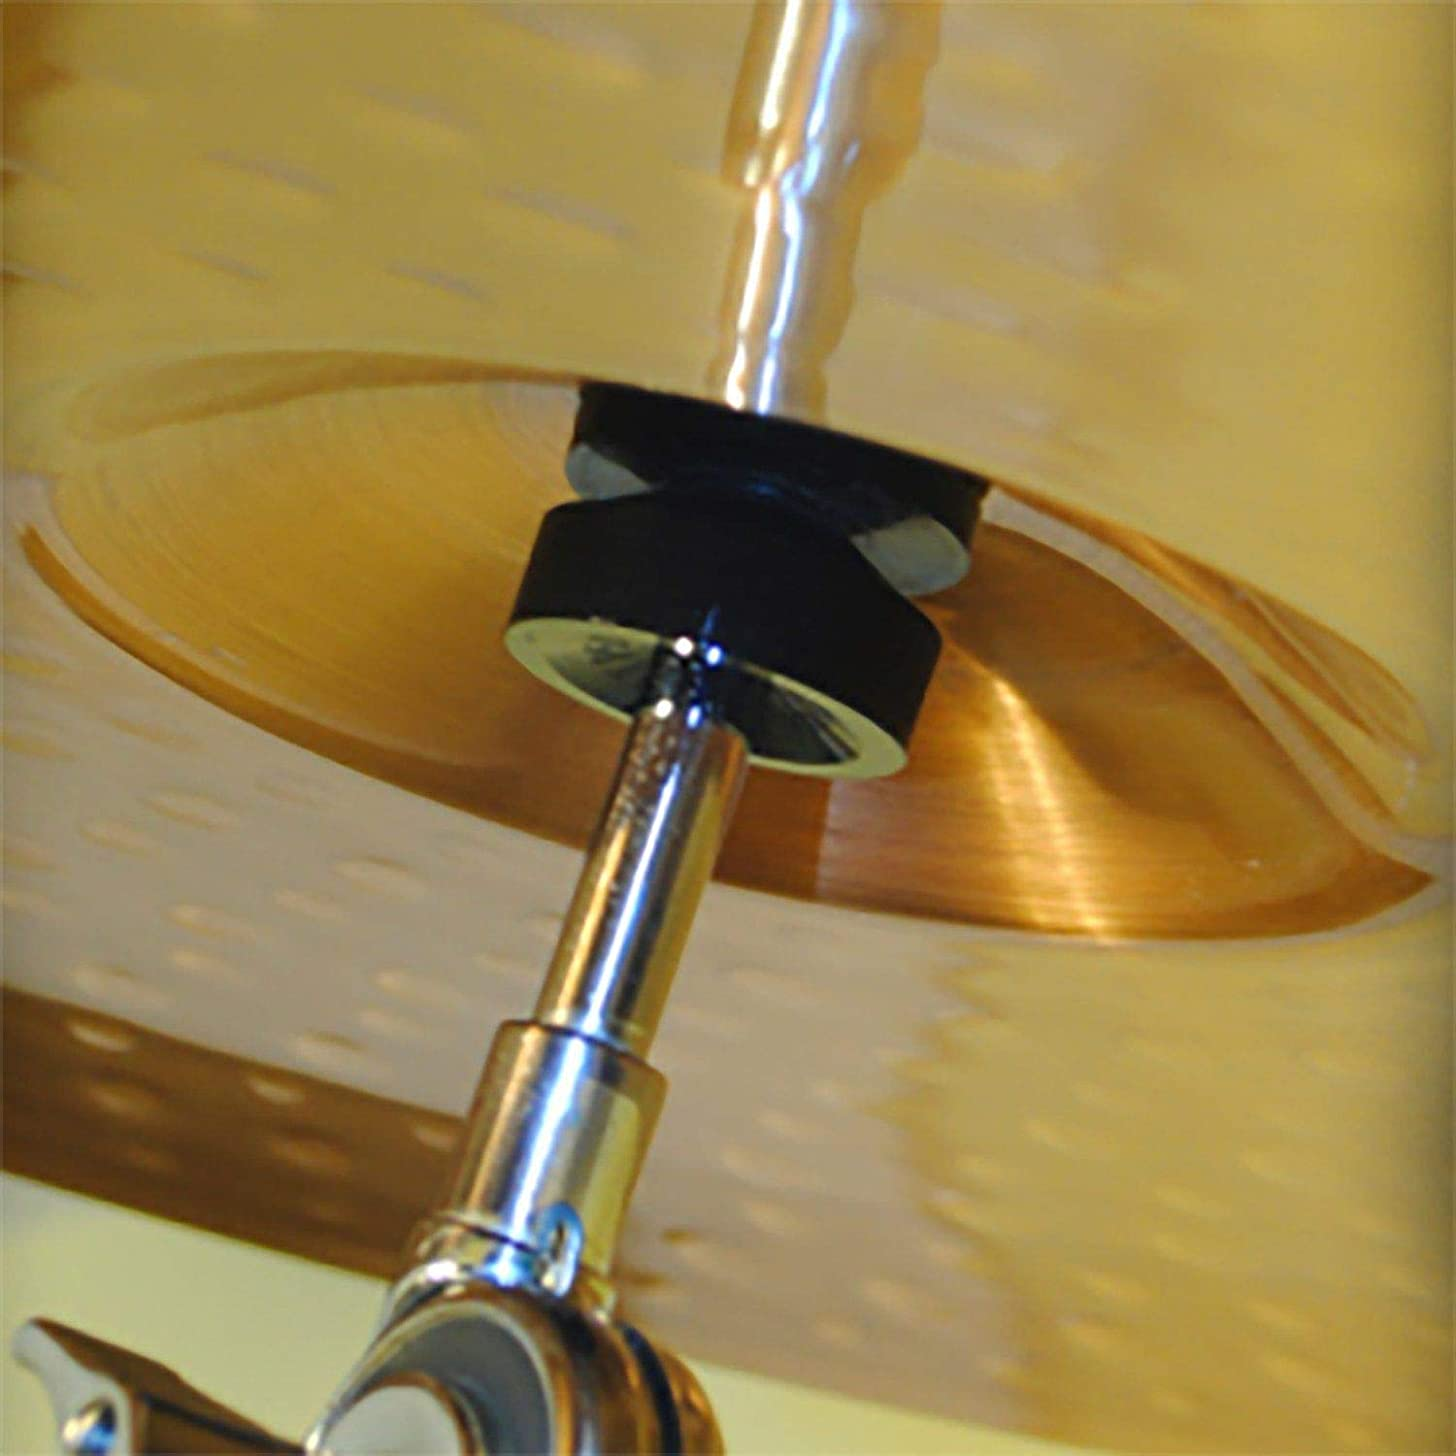 CymbalChief Cymbal Support for Cymbal Stands